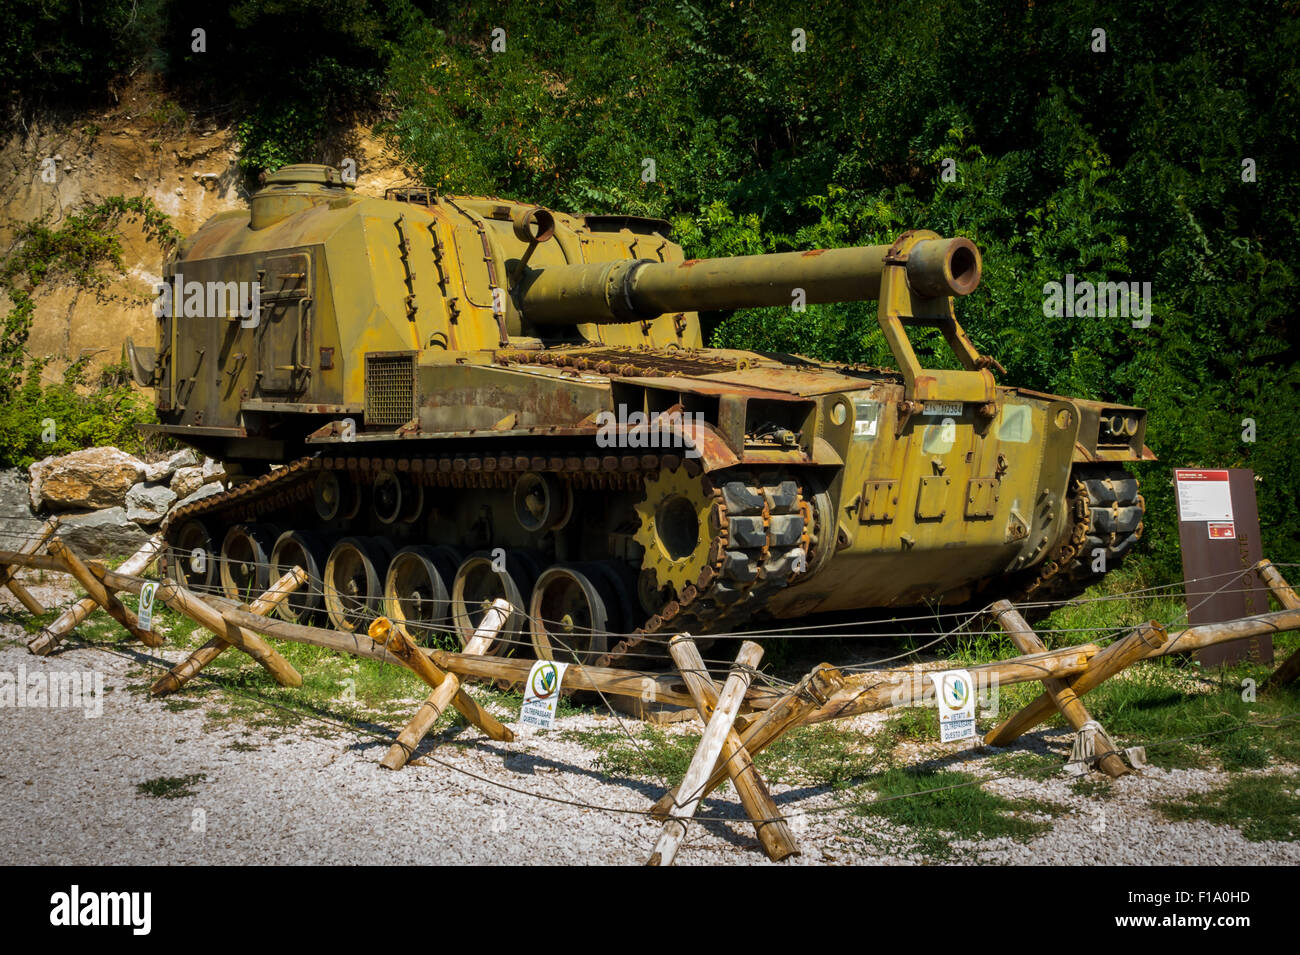 M55 Self Propelled Howitzer at Museum Monte Soratte - Stock Image